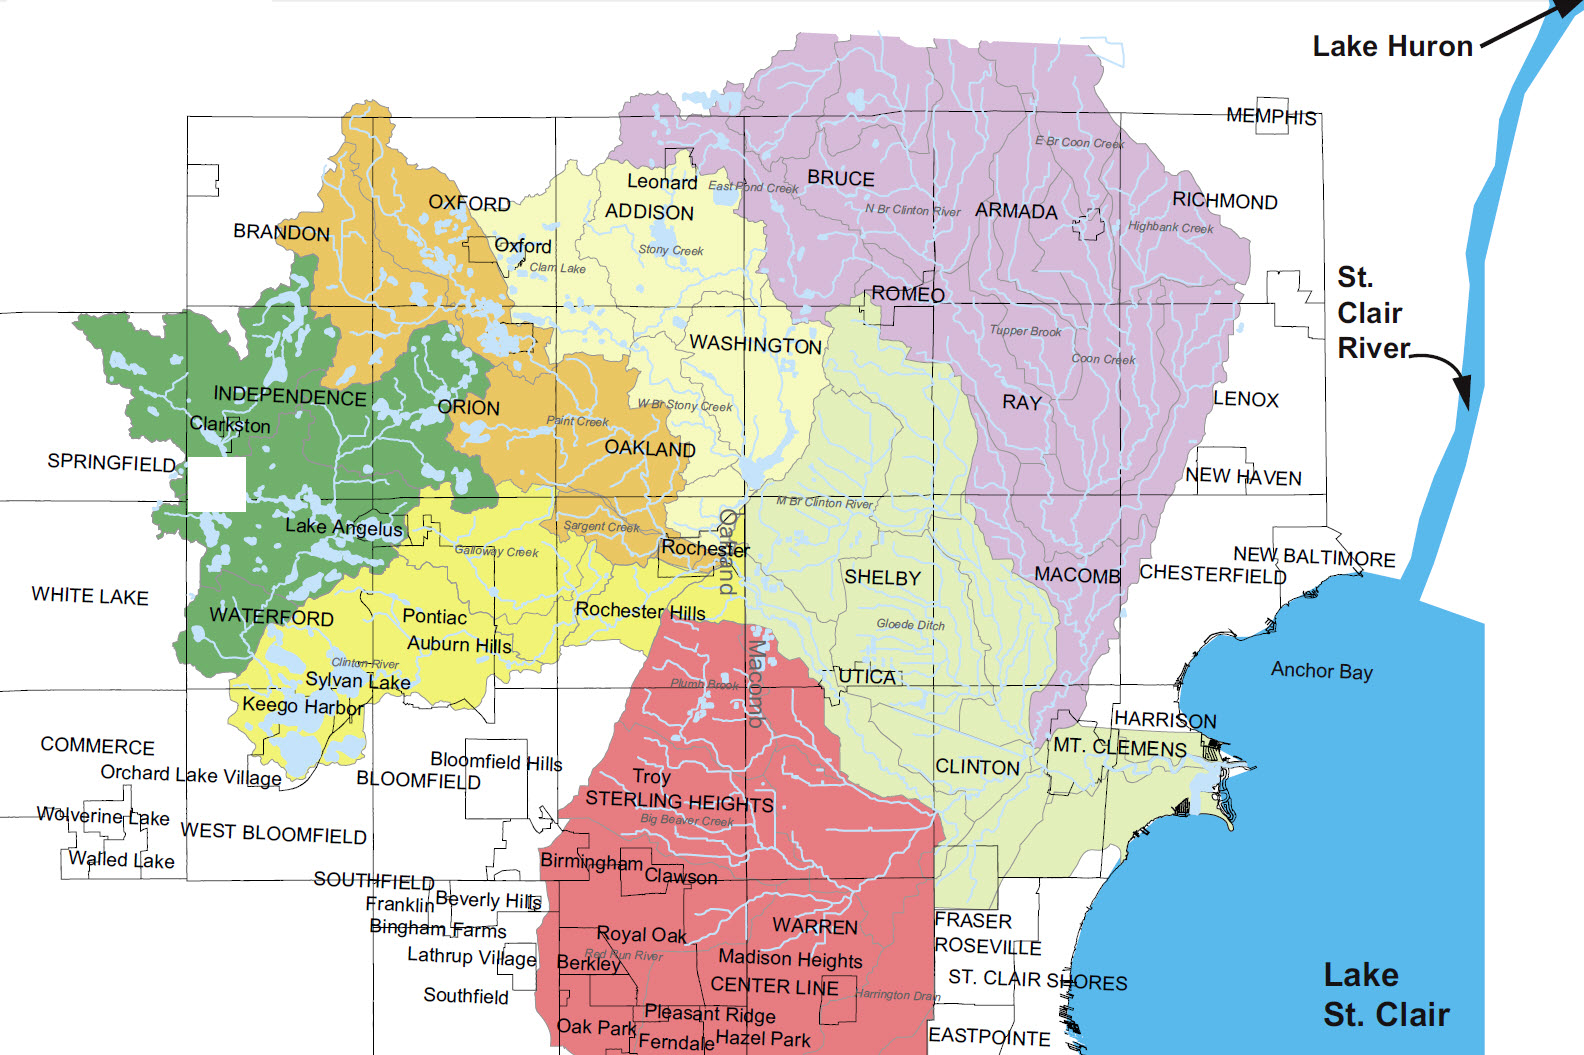 map of macomb county with Maps Of Red Run on Map Of Oakland County Michigan likewise Meetings Maps as well Michigan further 0 5885 7 339 73970 5461  00 additionally Michigan Regional Transit Bills Unveiled.